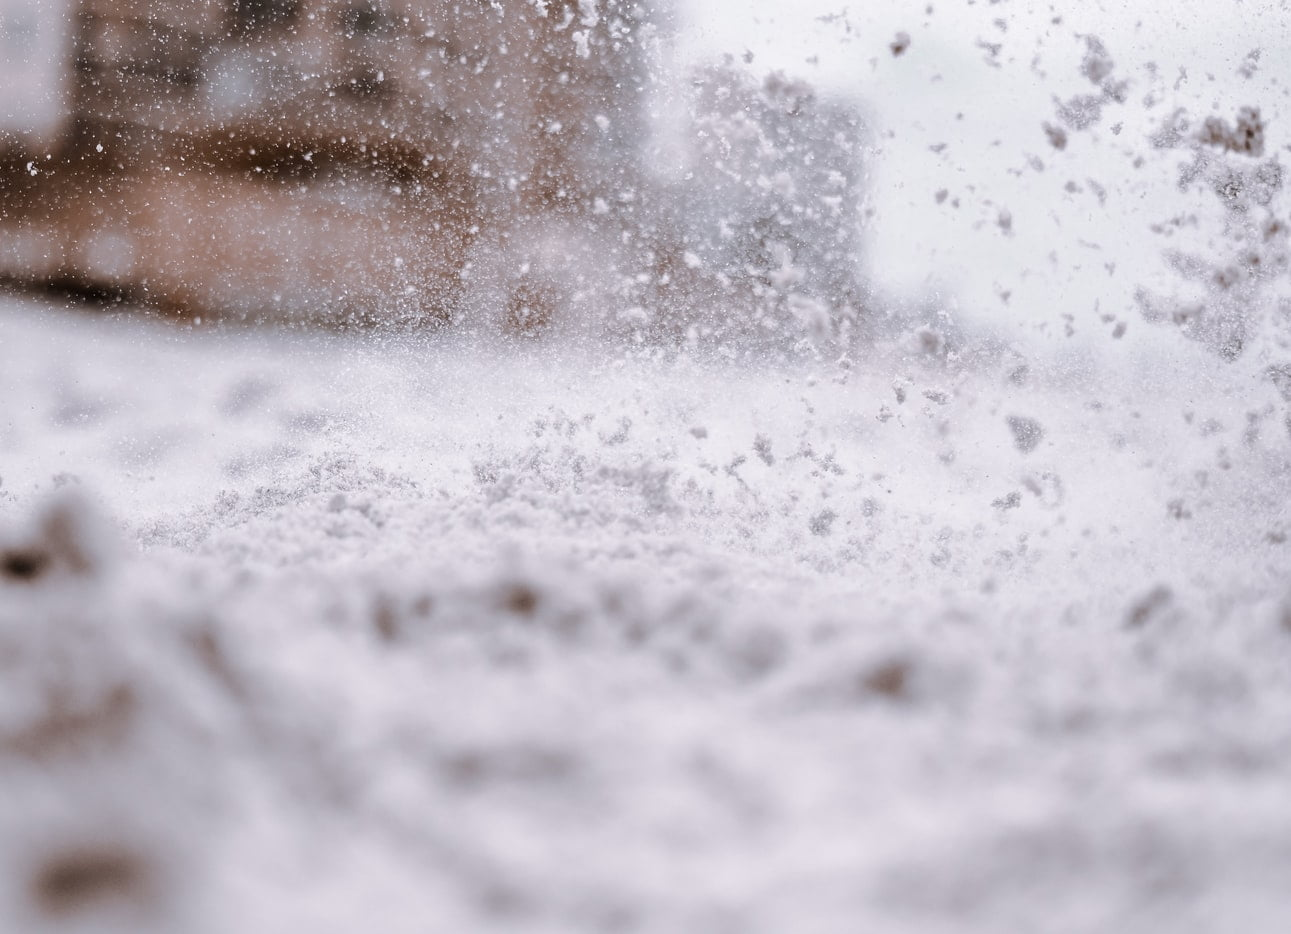 The Most Expensive Damages to Businesses in Winter